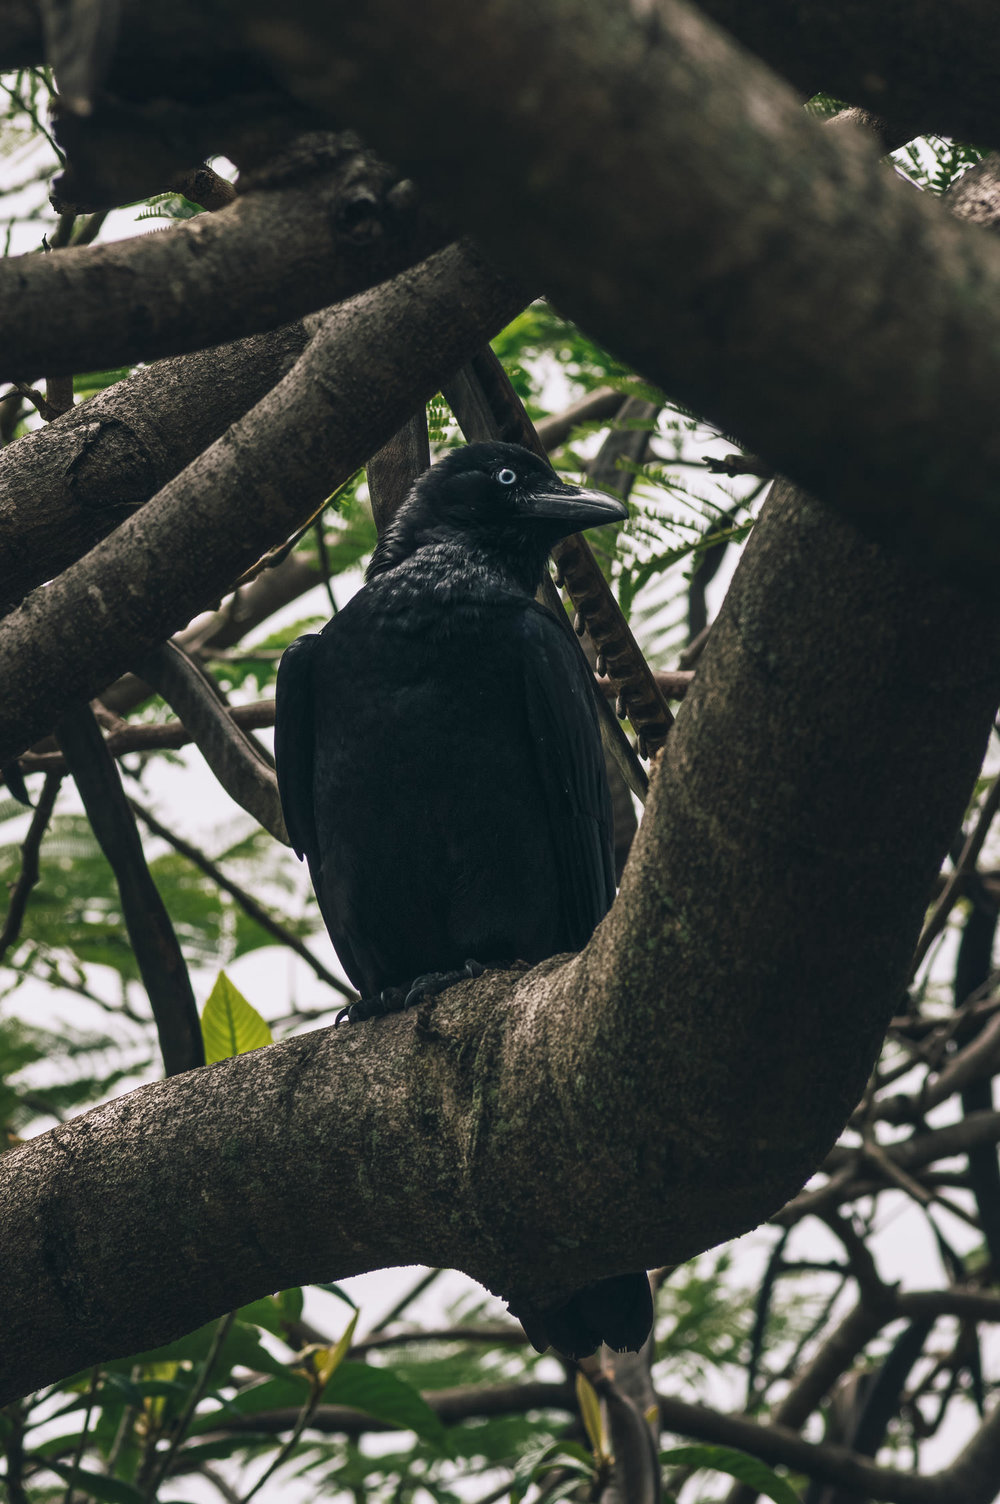 A local crow I've befriended, checking me out from a poinciana tree. The owner of this property, an older lady, died earlier this year; her house was quickly sold and the property subdivided. I fear for the long-term survival of this tree and her other garden vegetation.